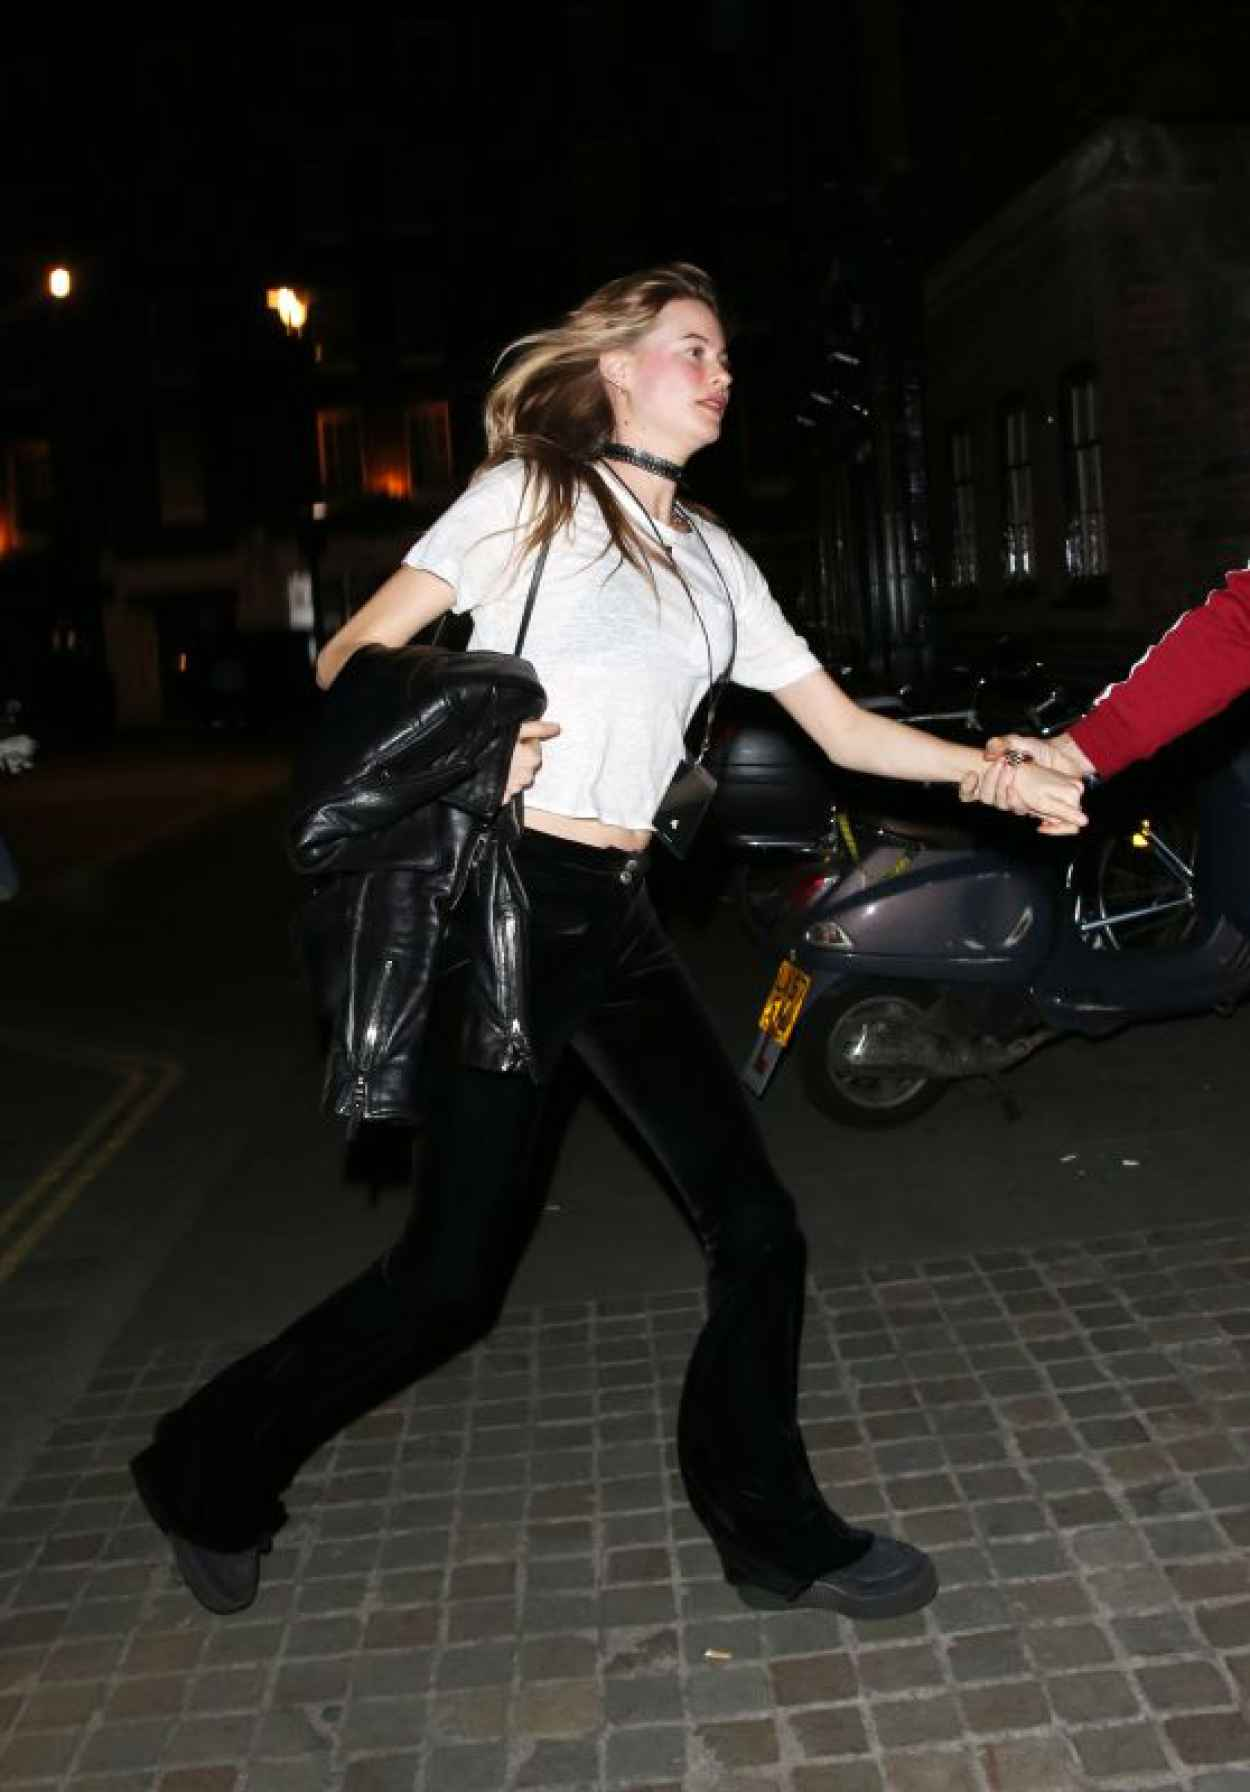 Behati Prinsloo Night Out Style - at the Chiltern Firehouse in London, May 2015-1